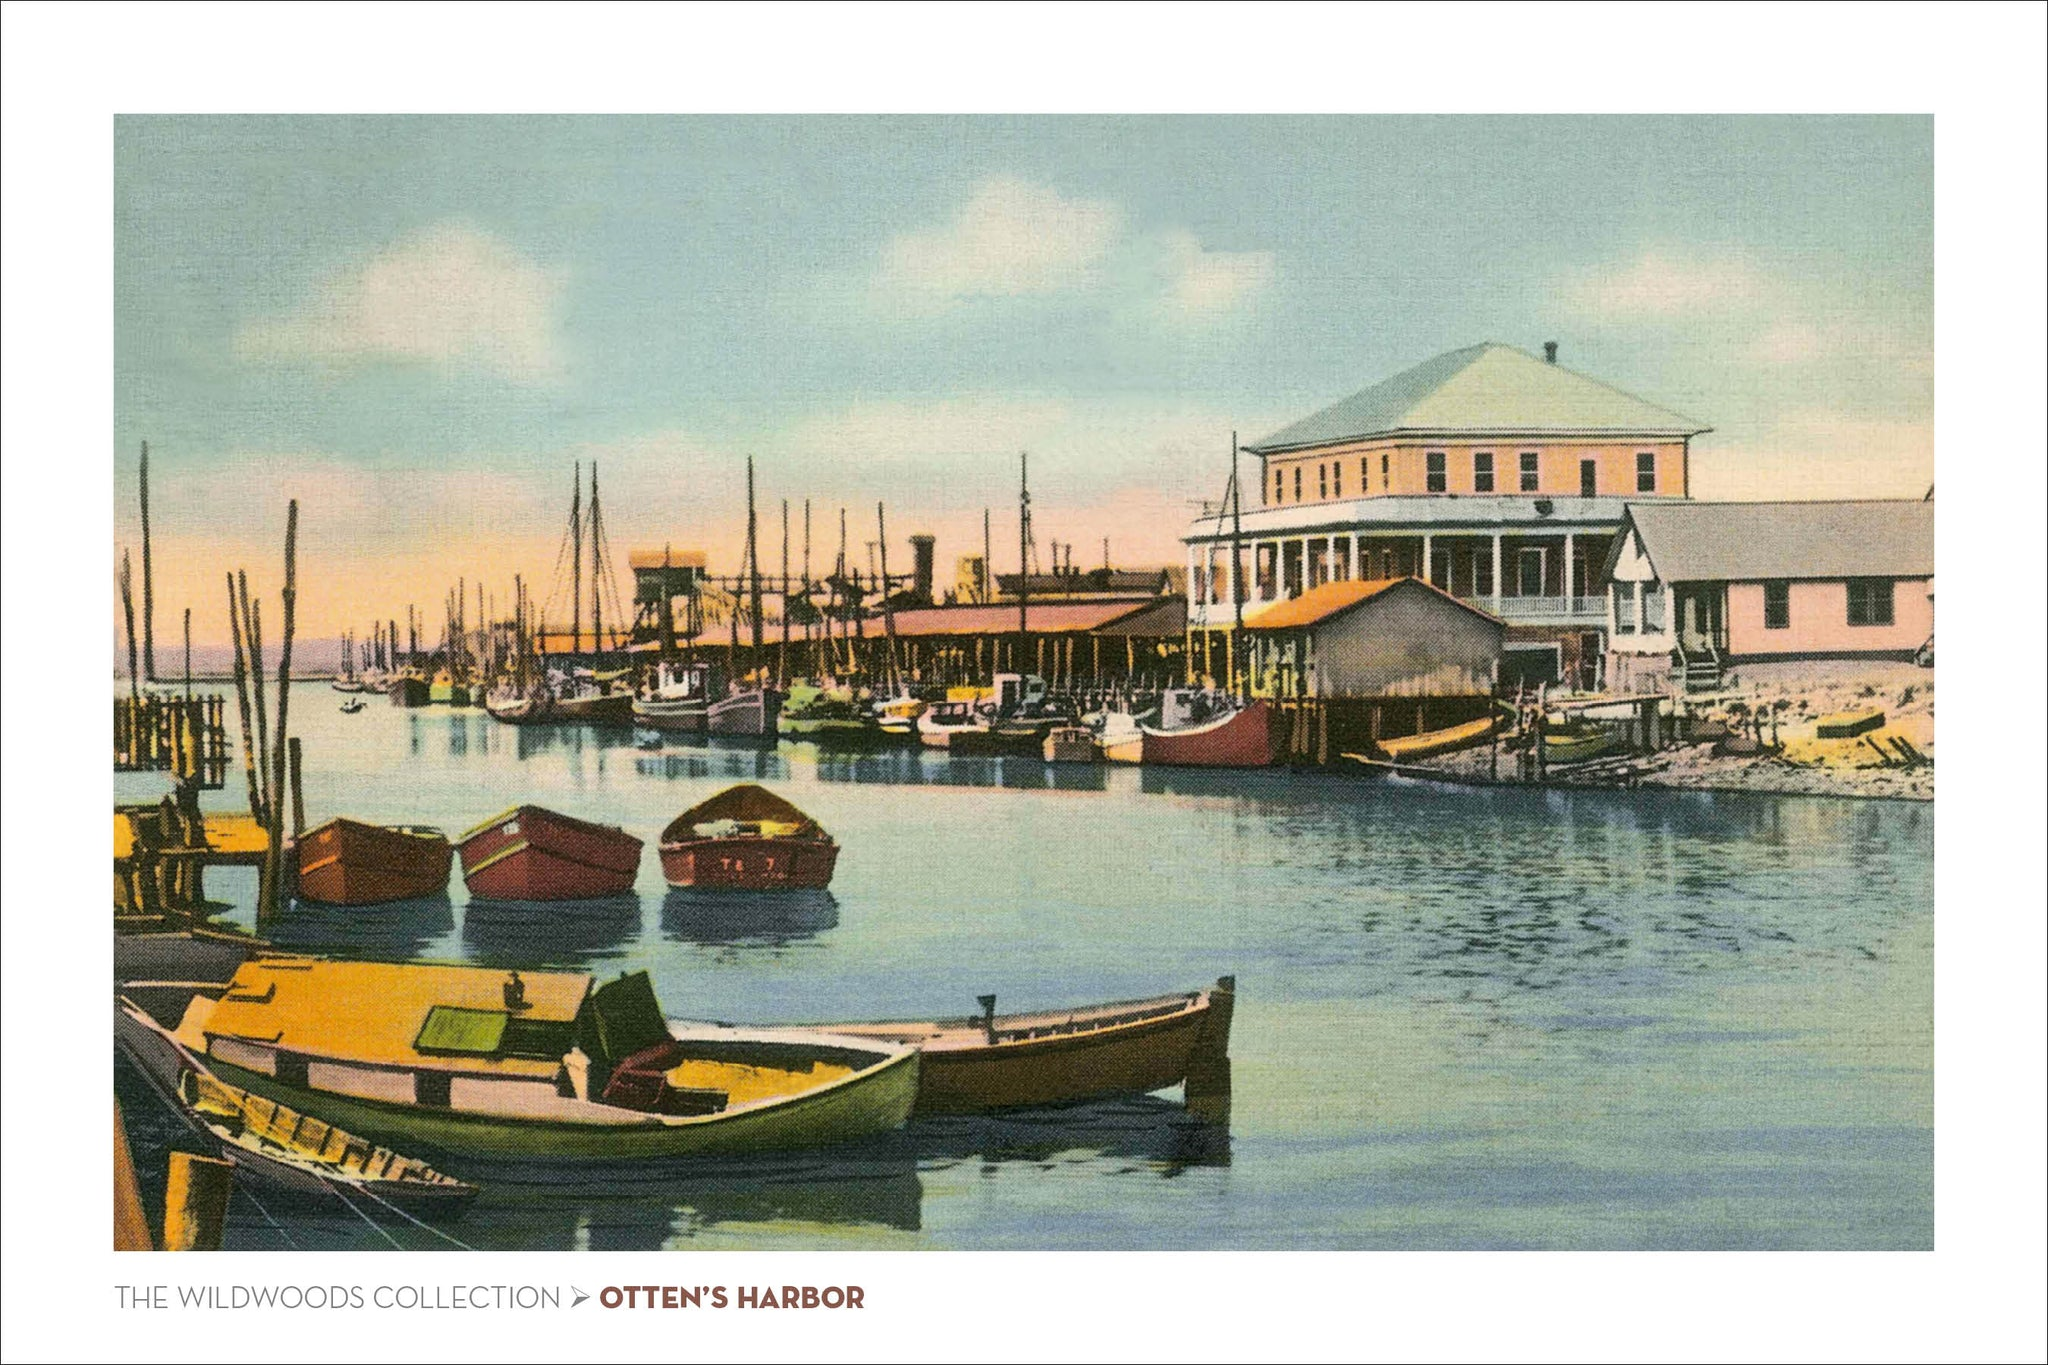 Otten's Harbor